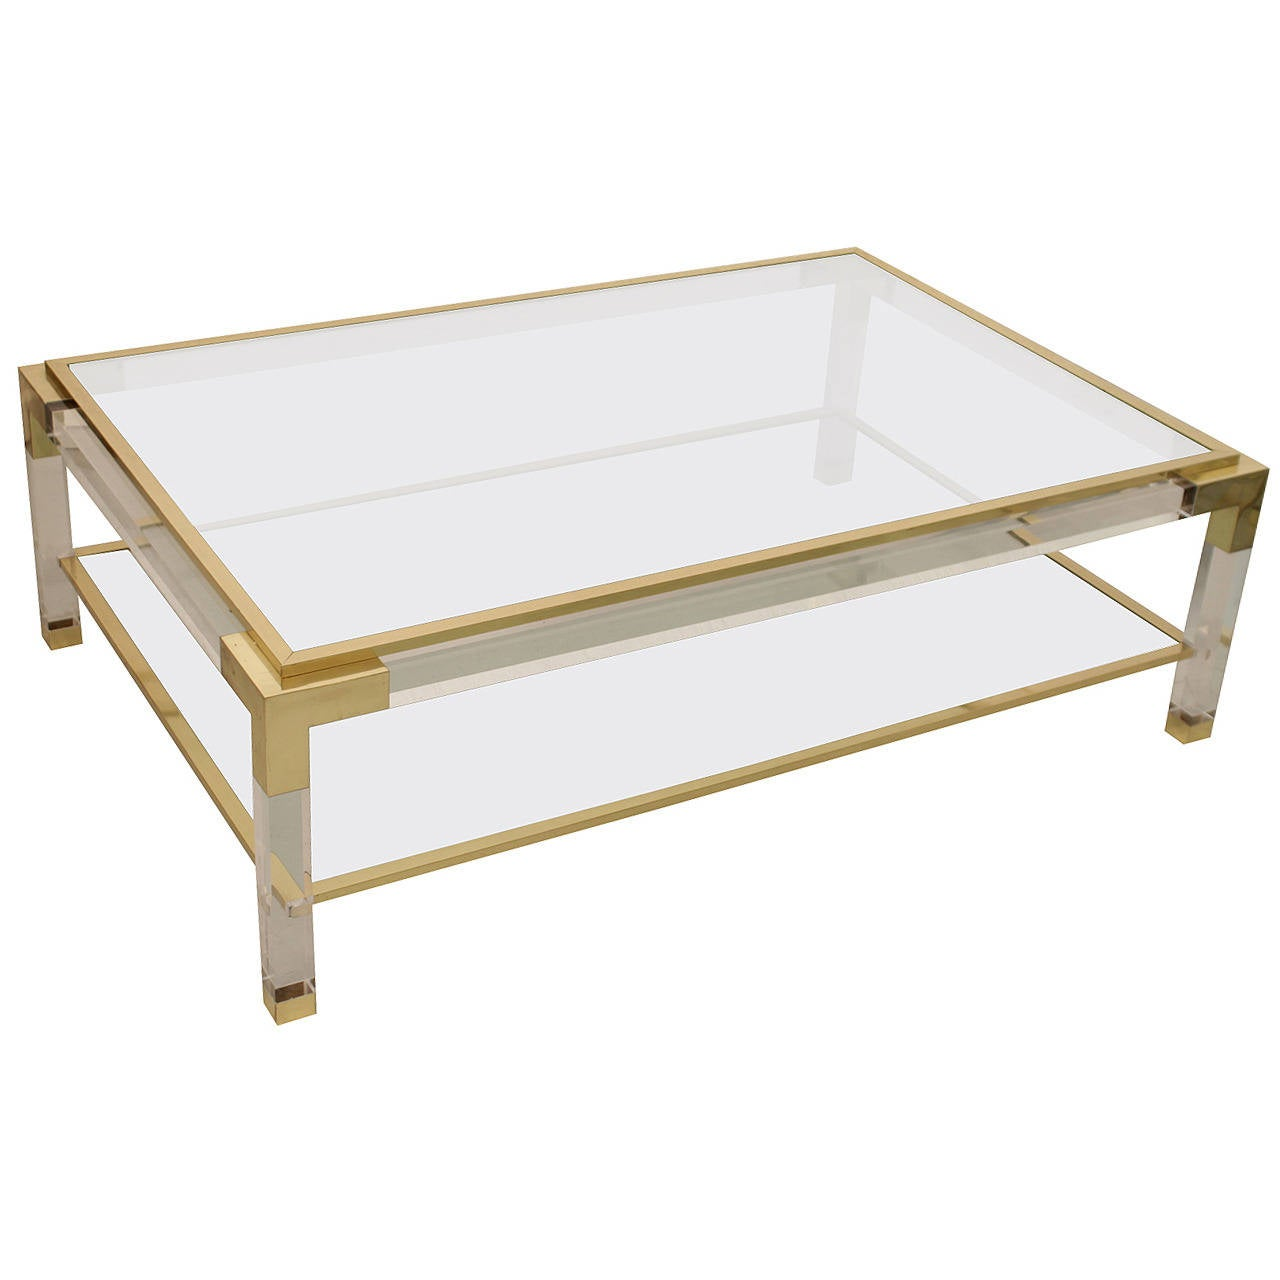 Vintage brass lucite and glass coffee table at 1stdibs for Lucite and brass coffee table